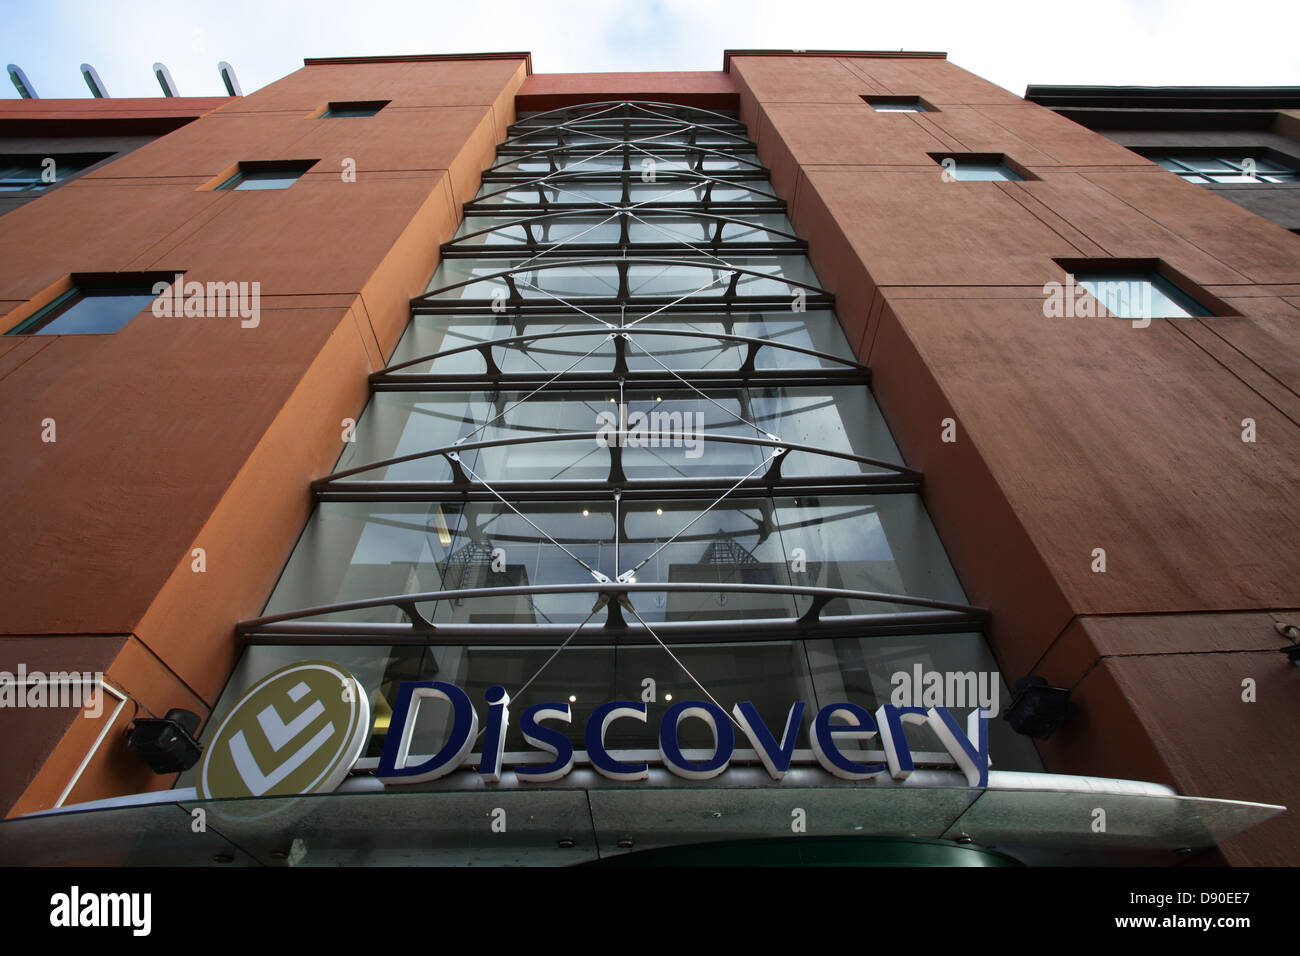 Discovery Century City, Cape Town. - Stock Image